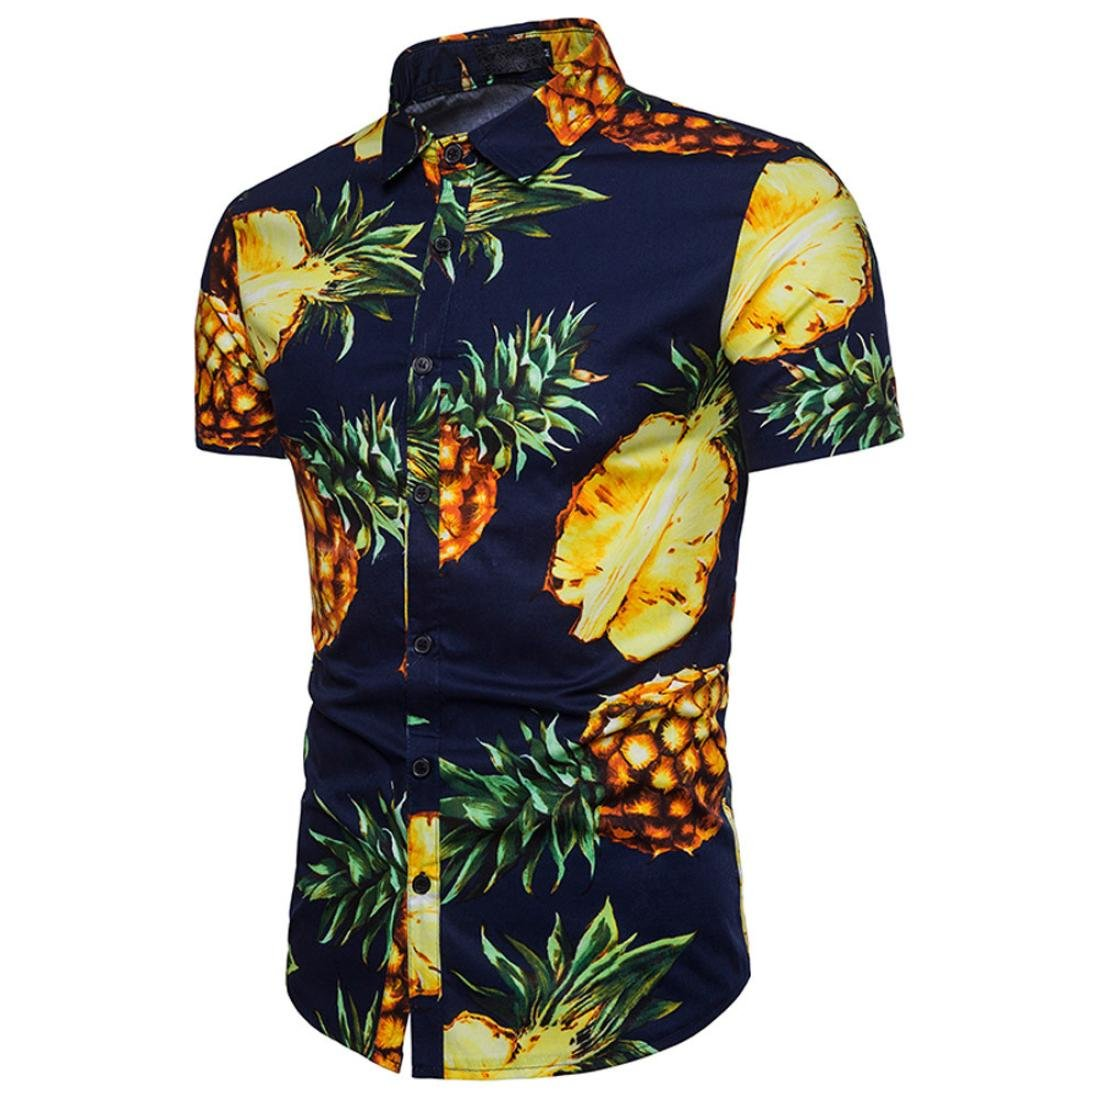 GBSELL Men's Summer Performance Slim Short Sleeve Button-Down Pineapple Printed Top Blouse (Navy, M)